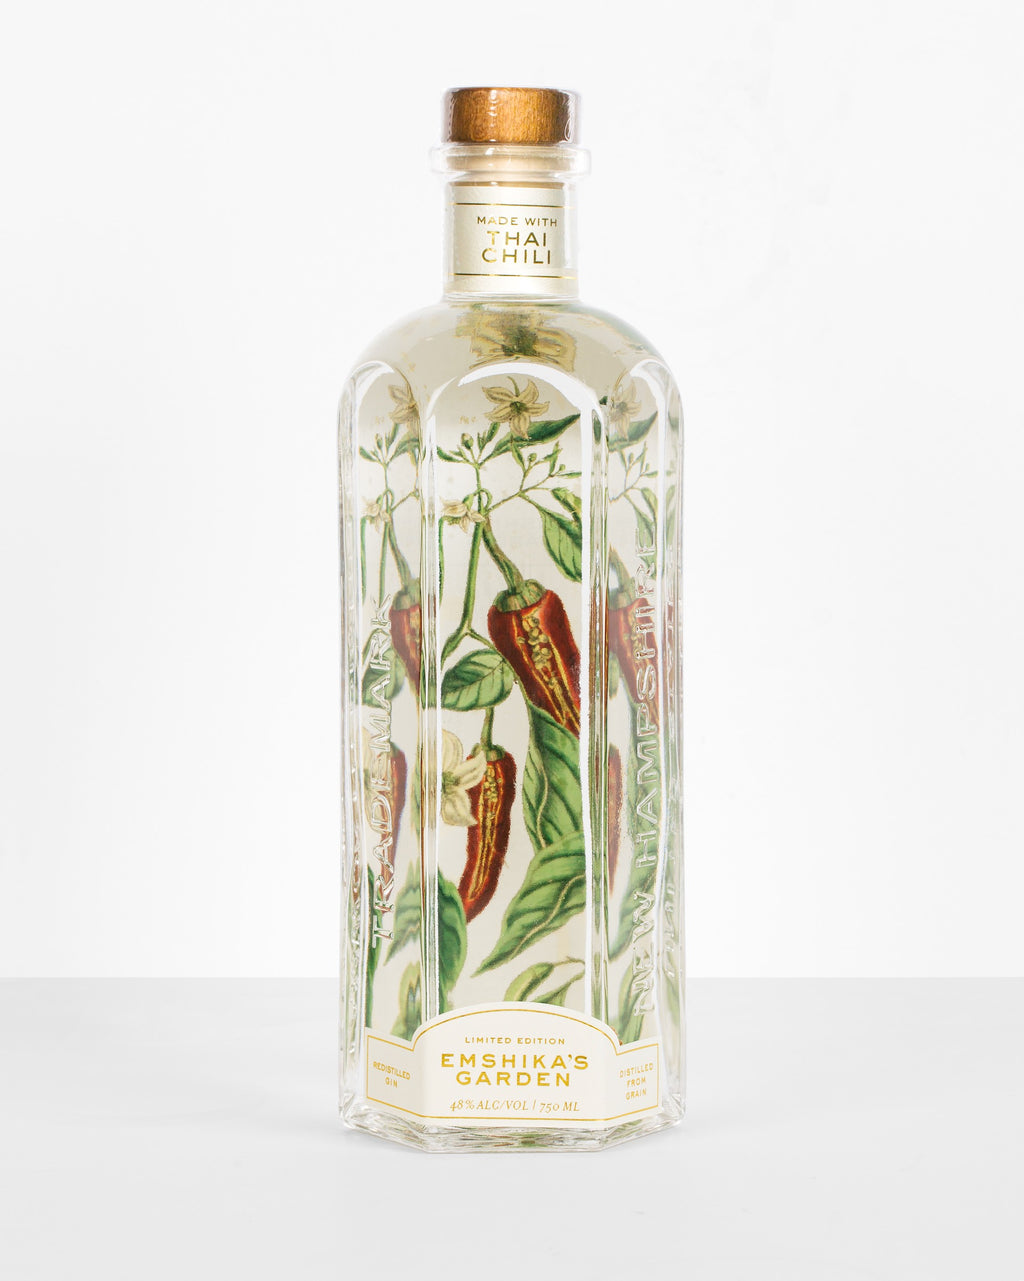 Tamworth Garden Thai Chili Gin